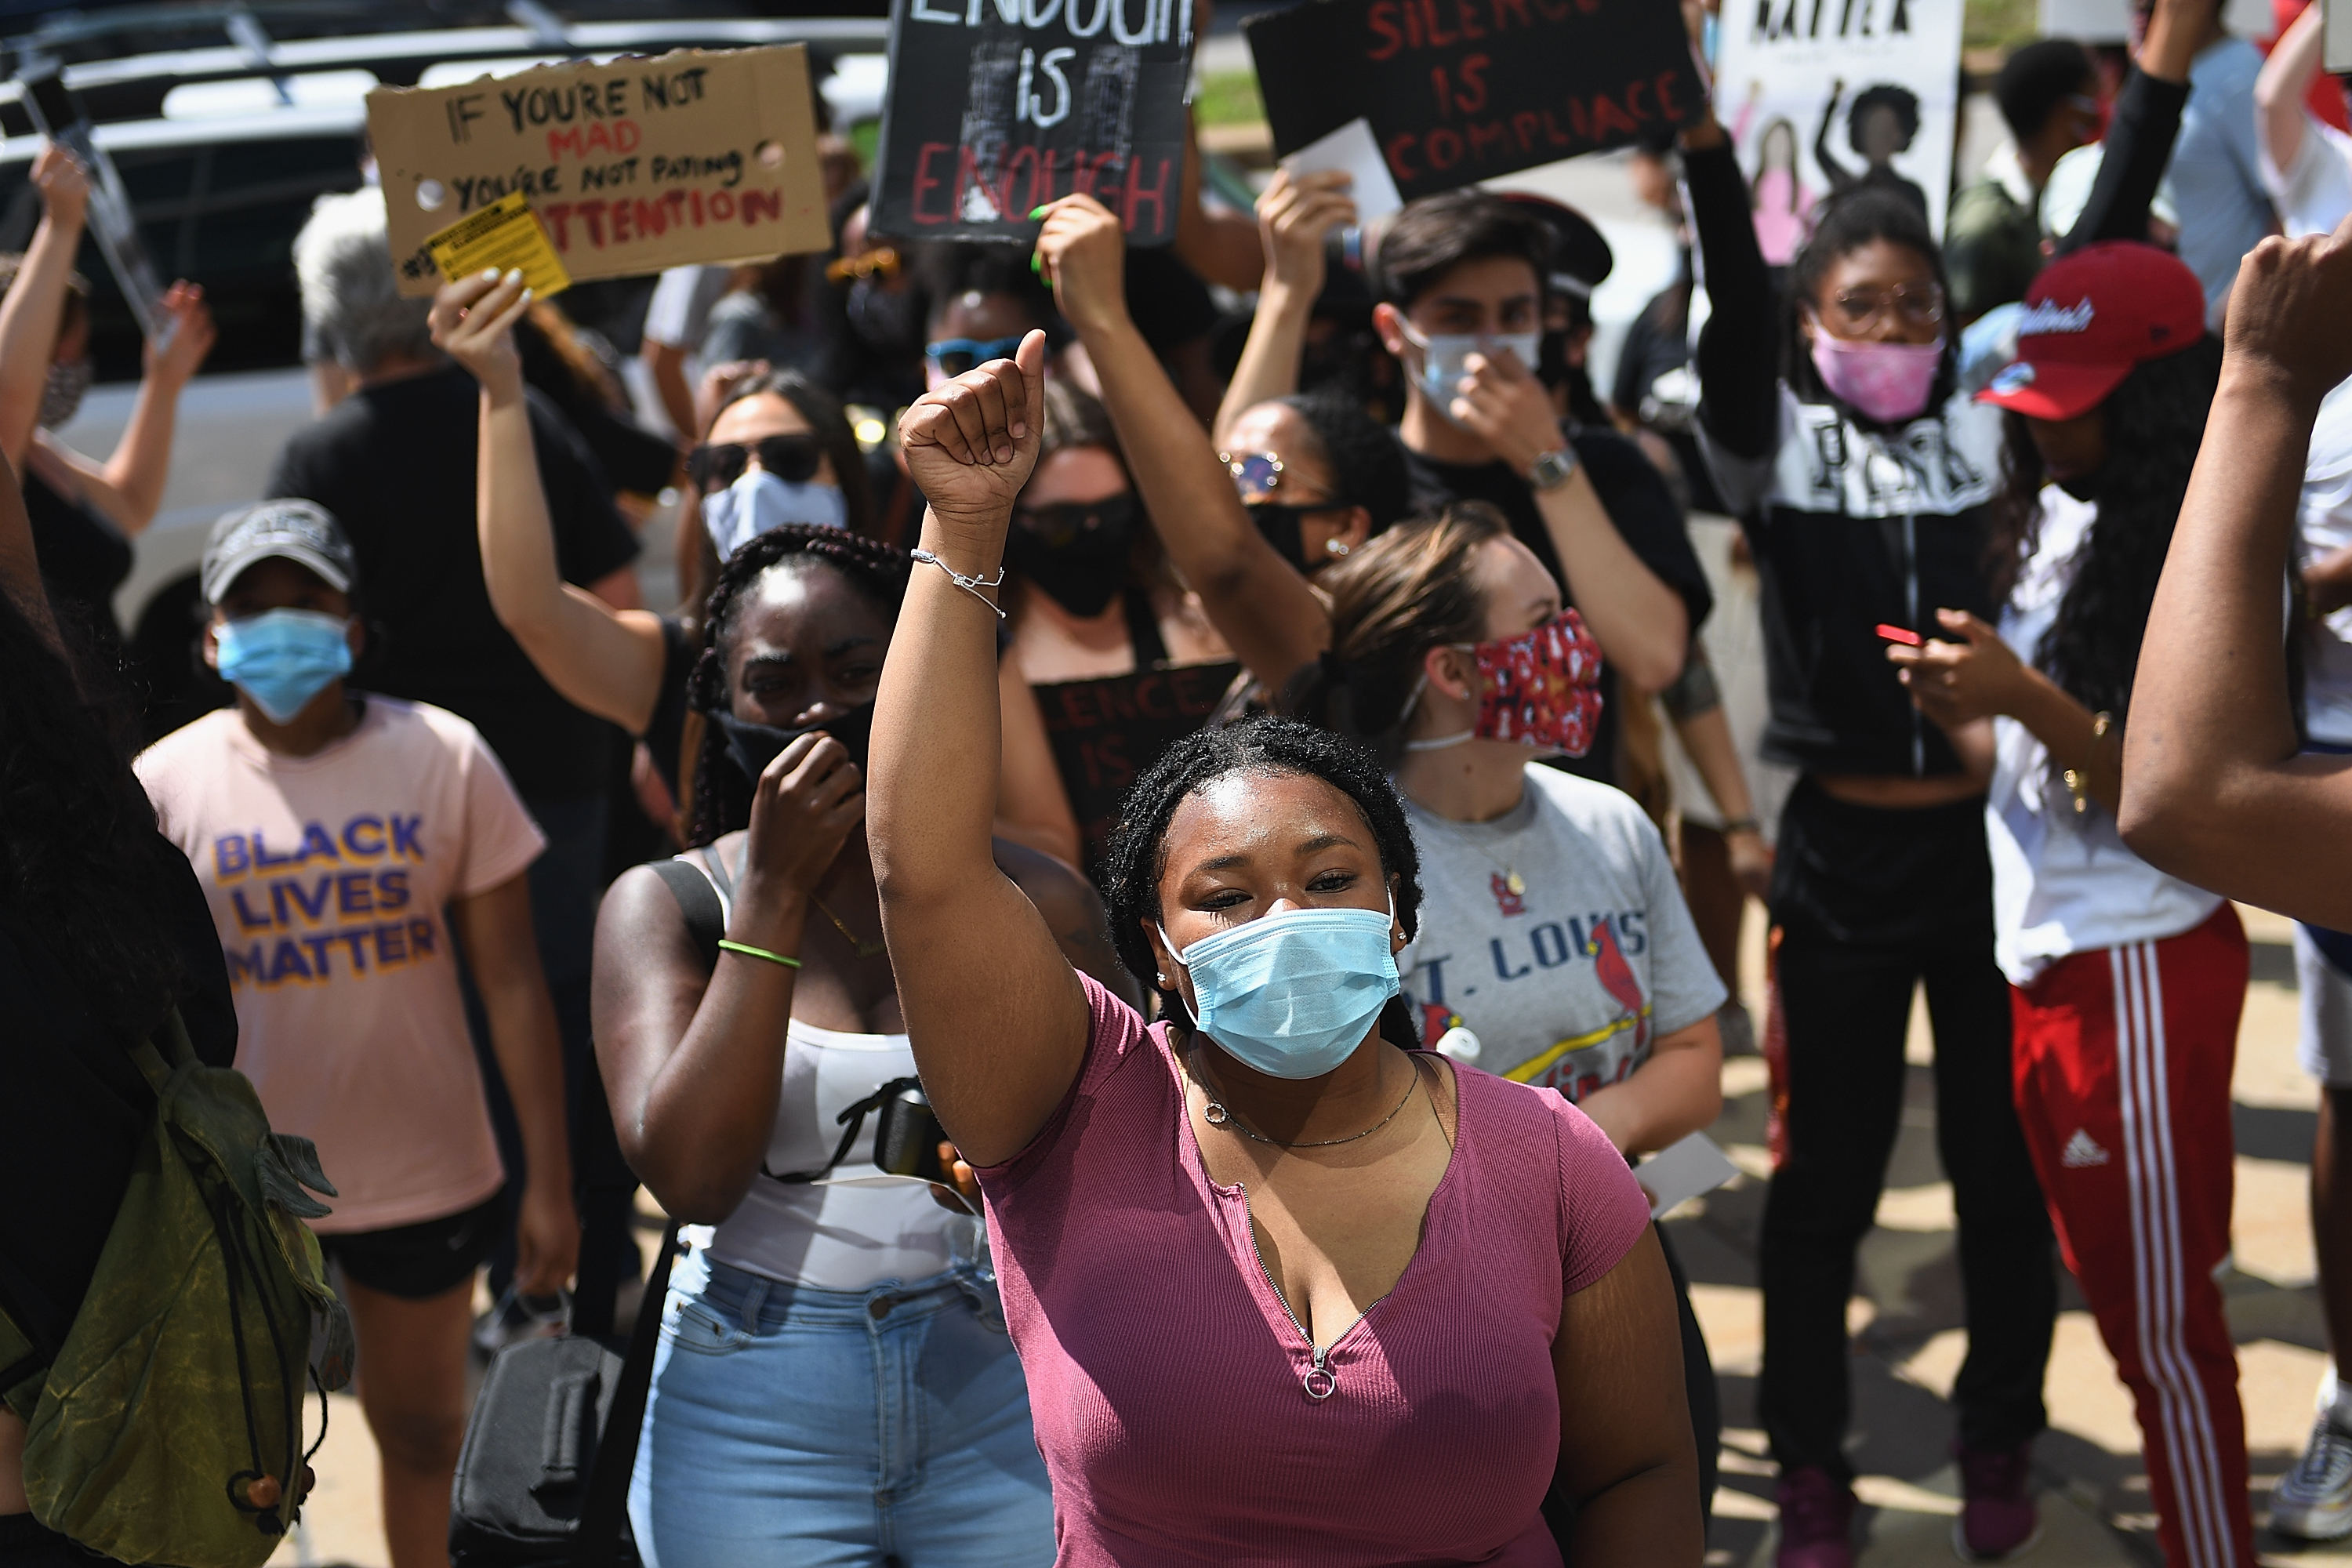 Protest Held Outside St. Louis Justice Center As Protests And Unrest Continue Across Nation